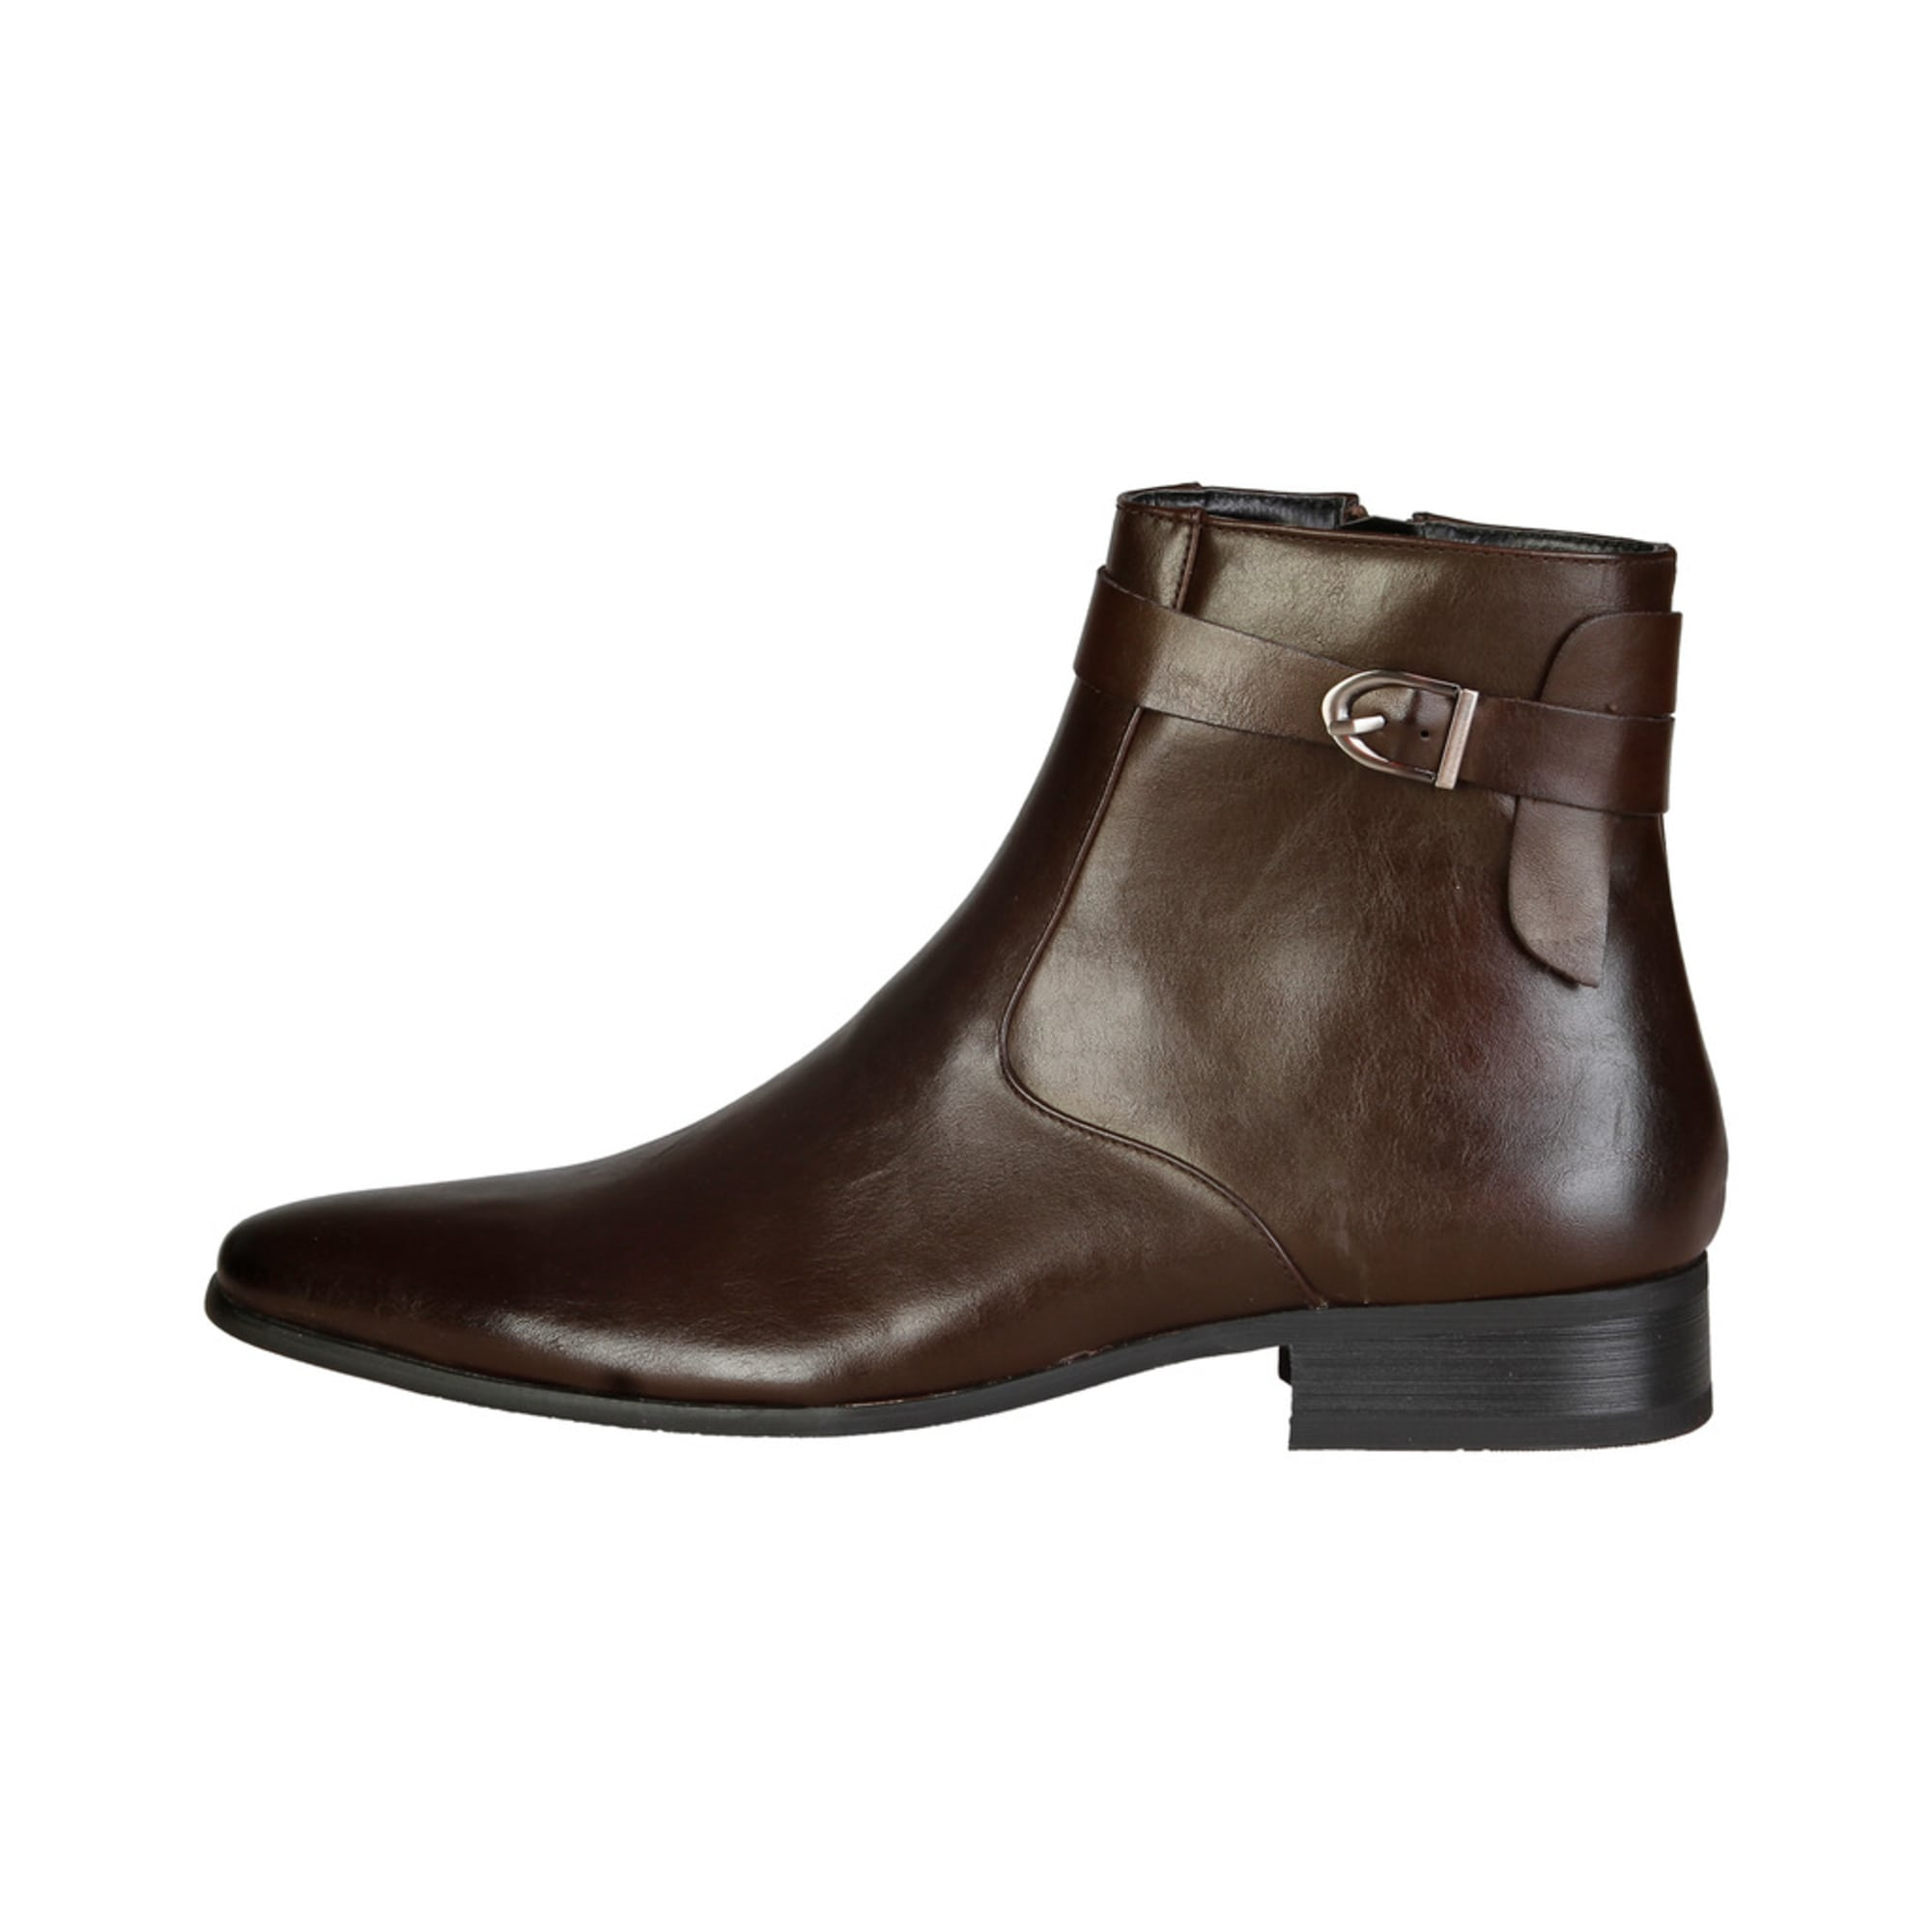 Bottines V 19.69 Marron